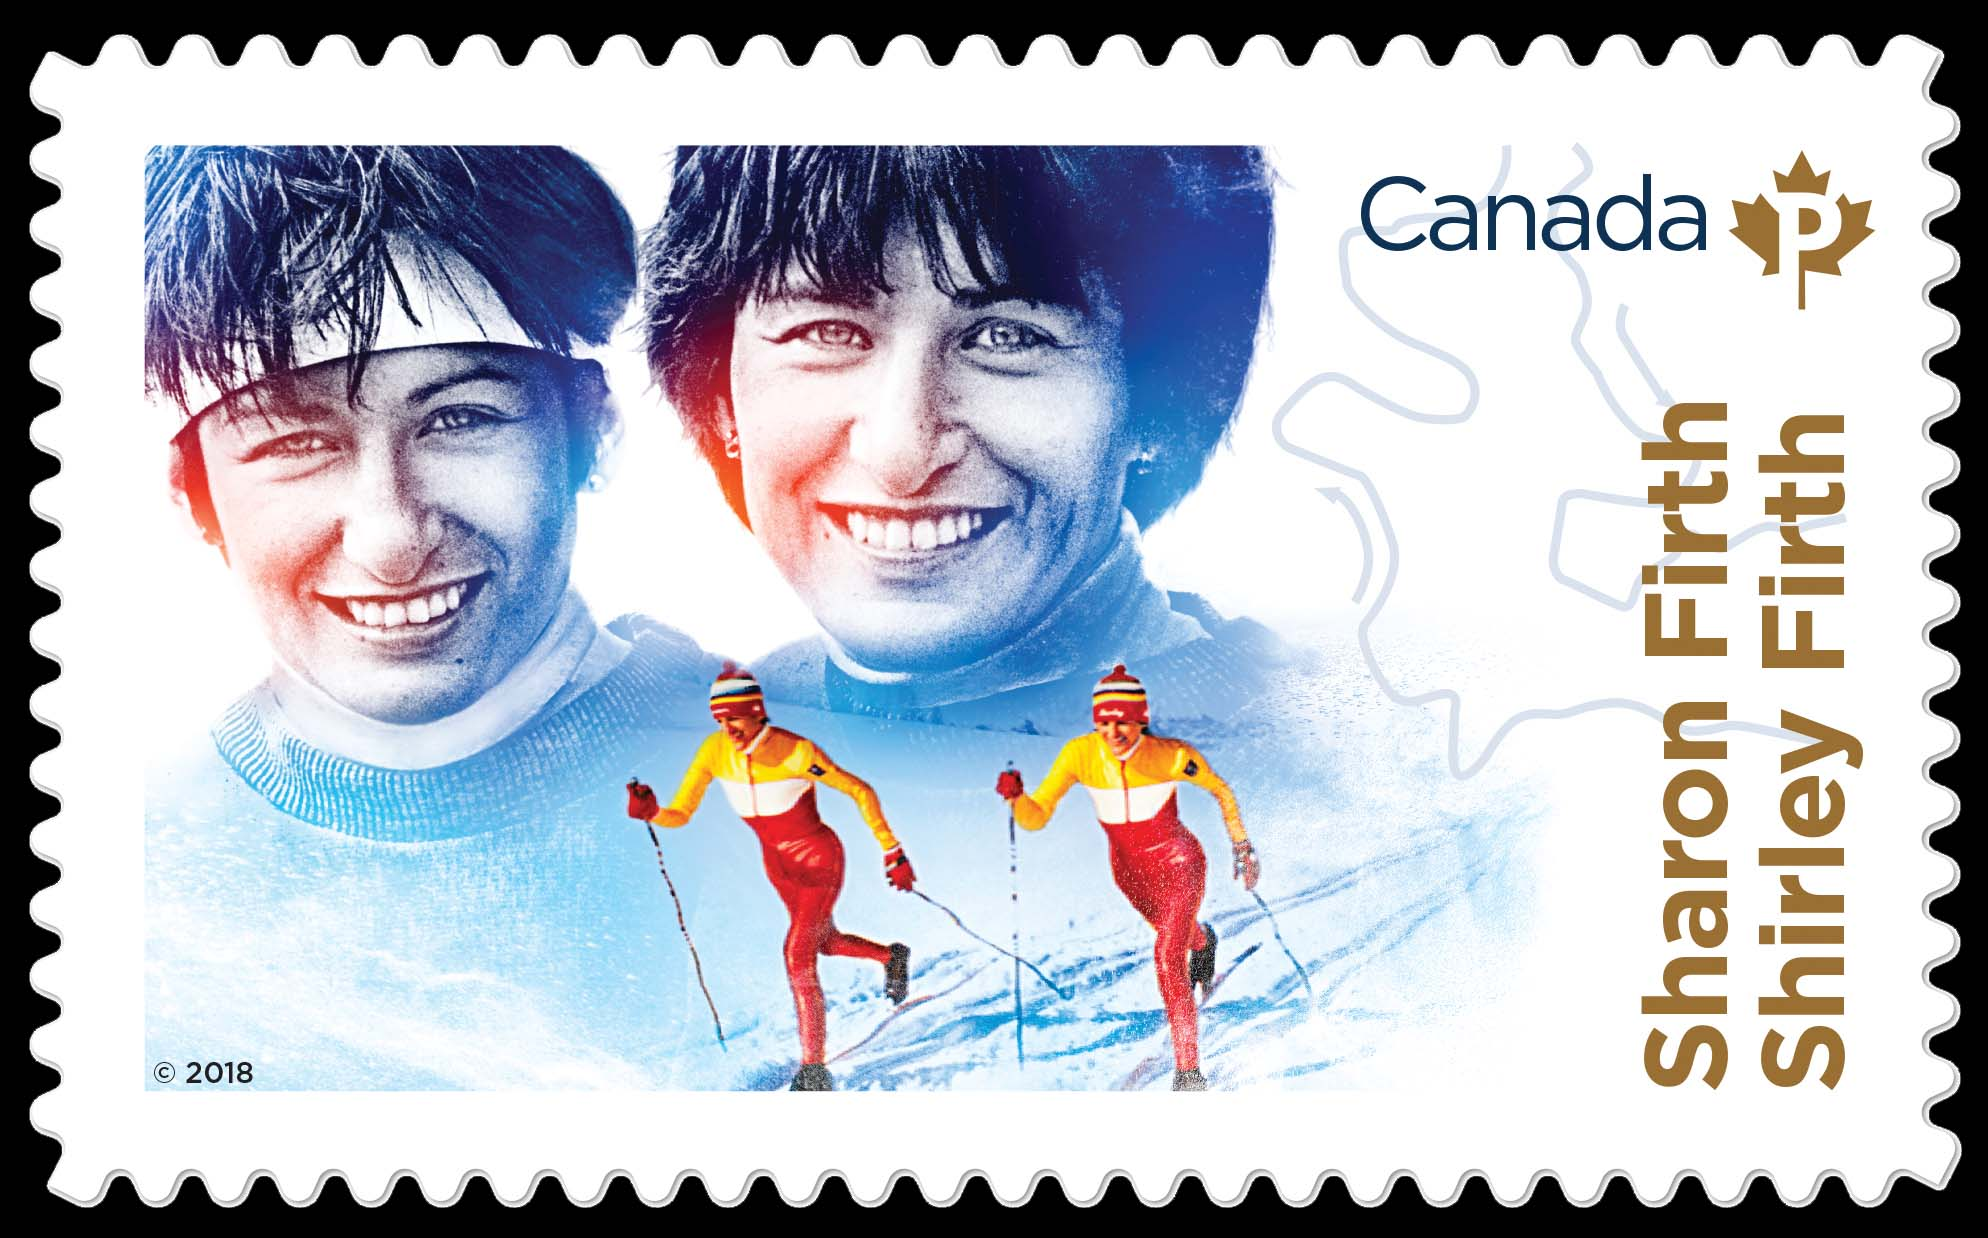 Sharon and Shirley Firth Canada Postage Stamp | Canadian Women in Winter Sports